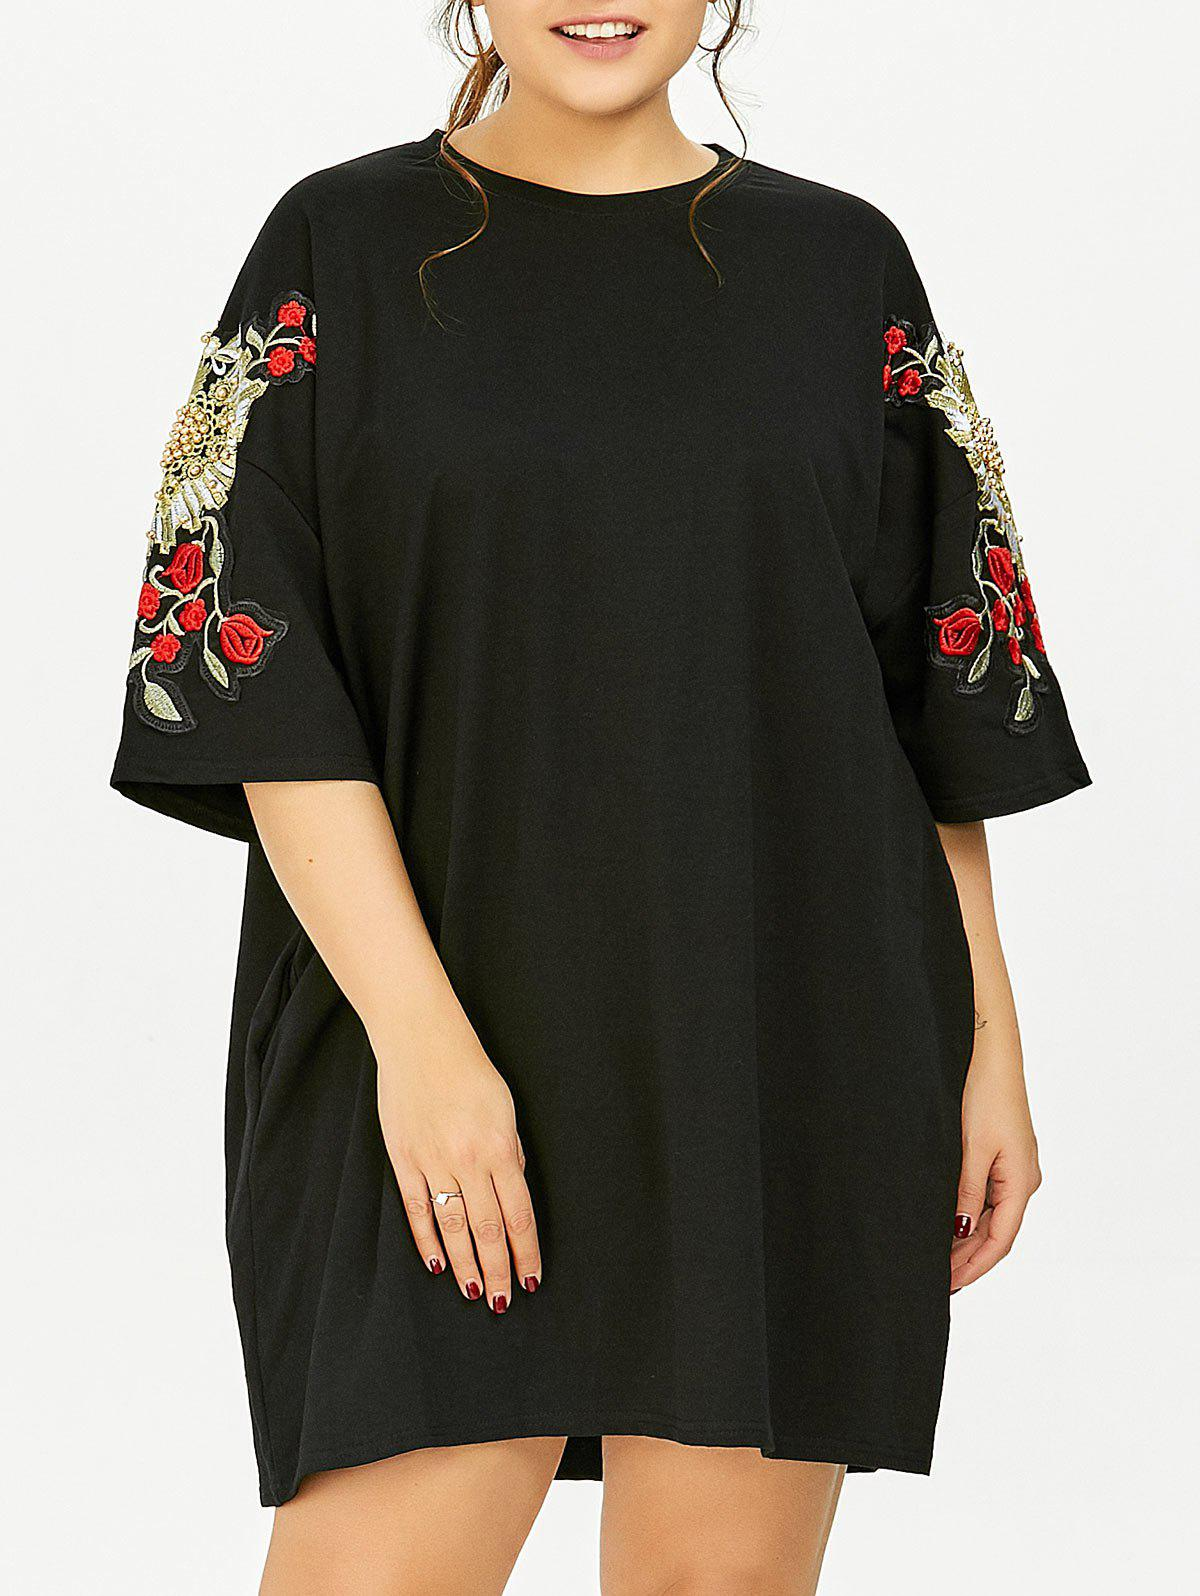 Black One Size Plus Size Floral Embroidered Tunic T-shirt ...